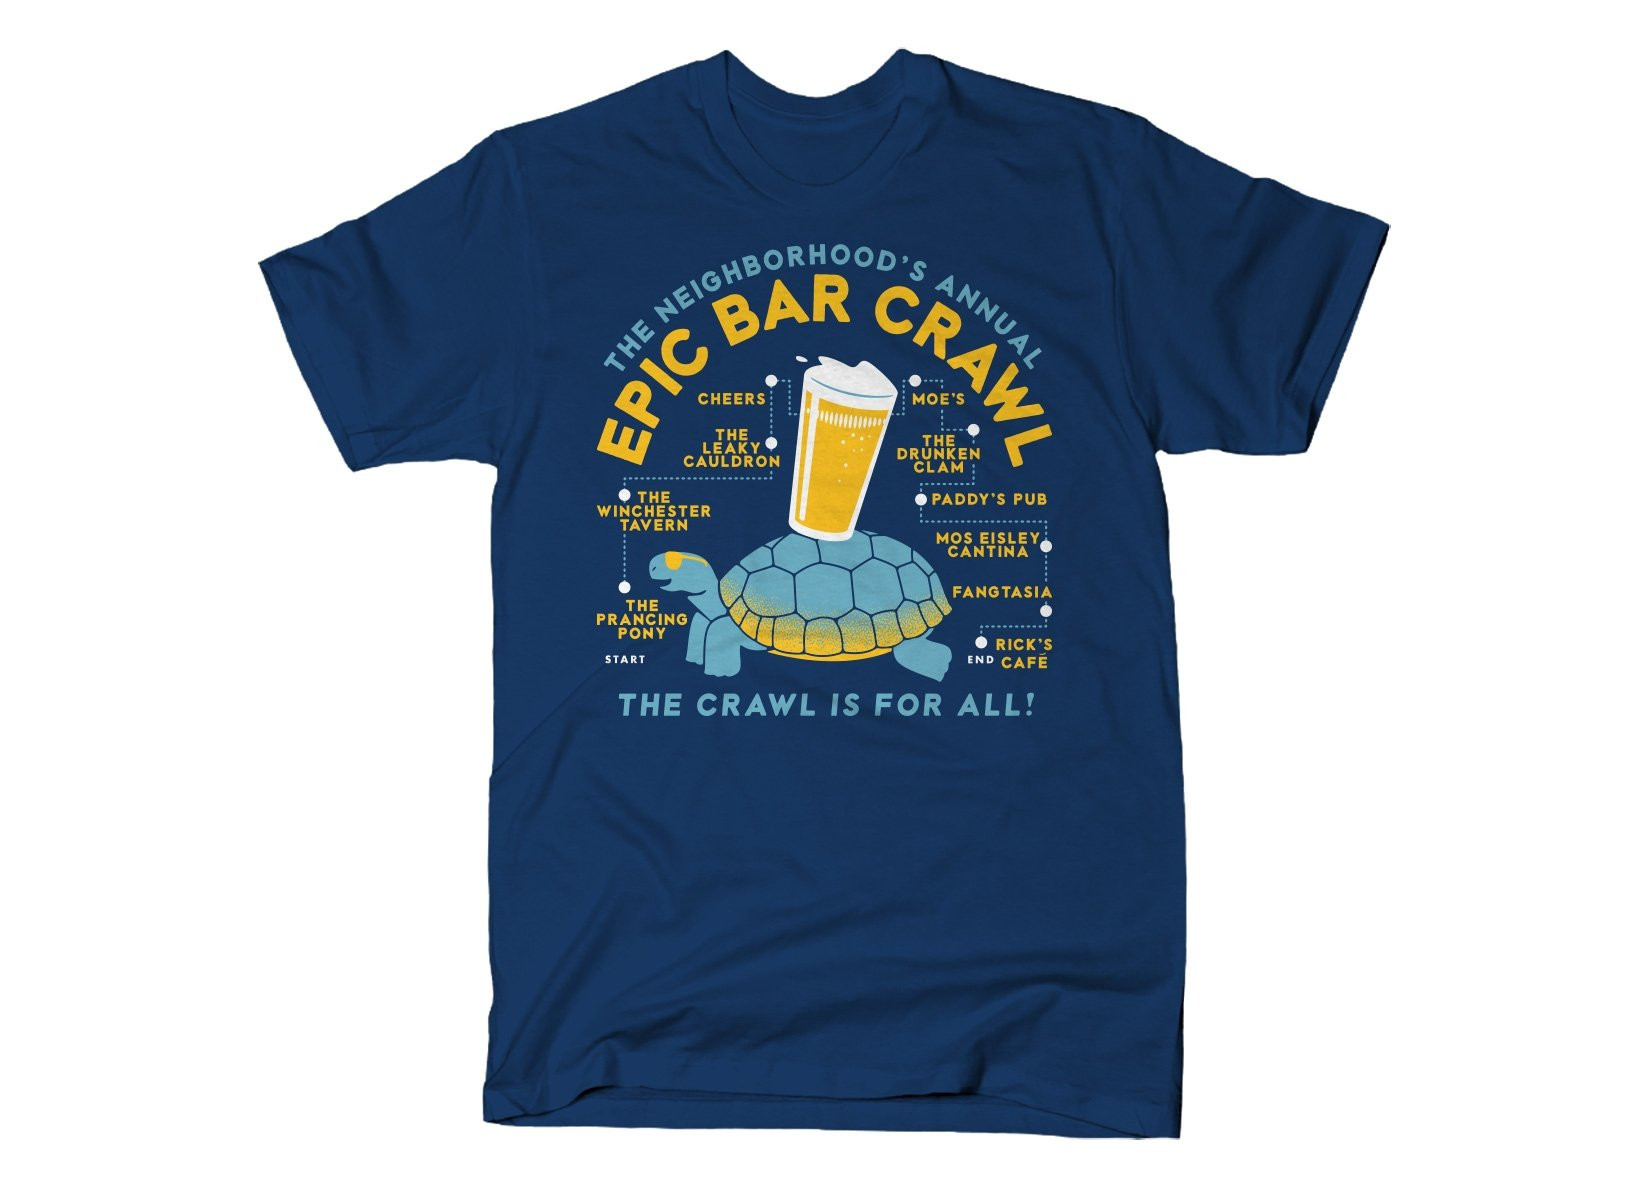 Epic Bar Crawl on Mens T-Shirt